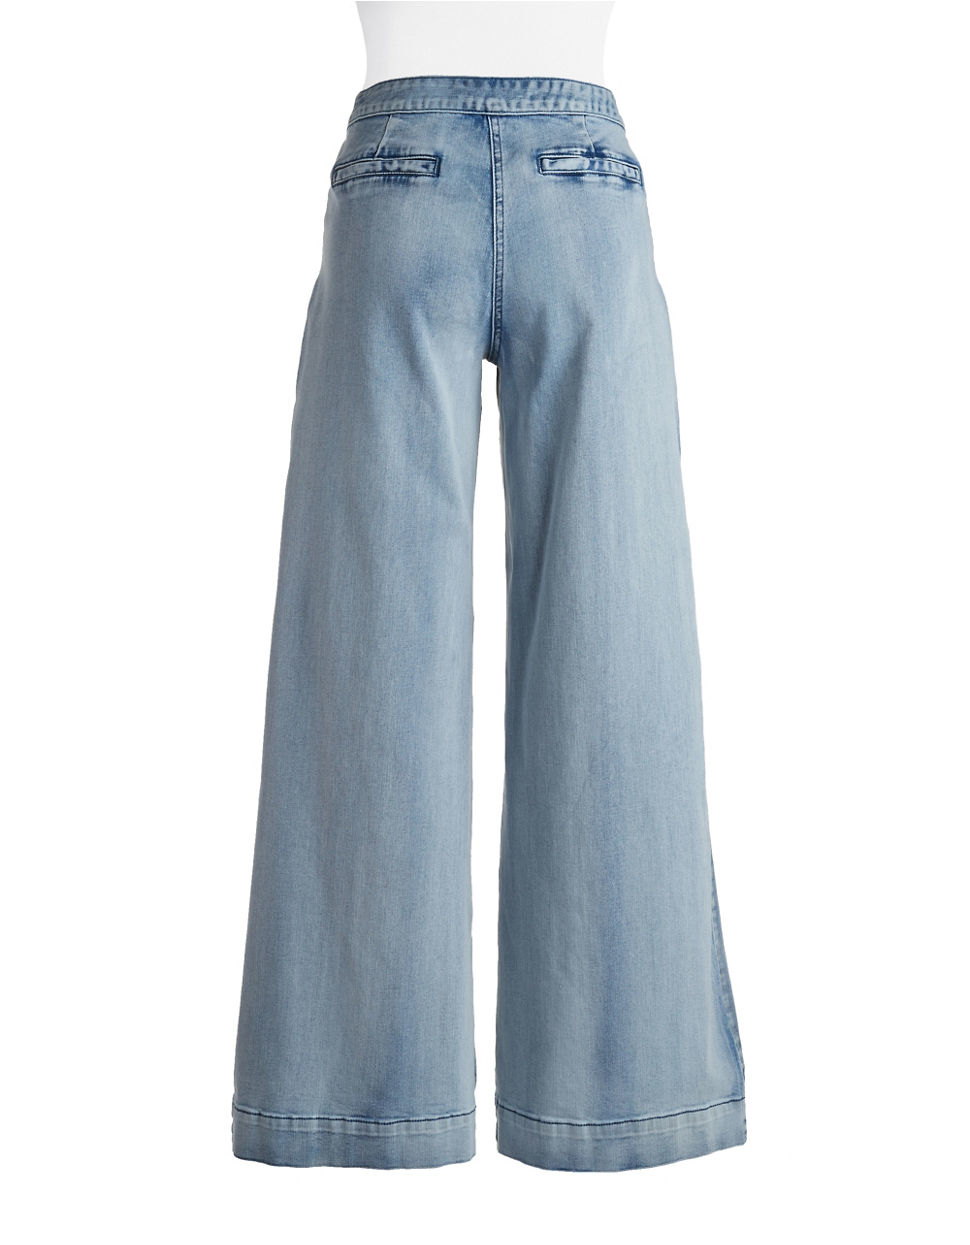 Plenty by tracy reese chambray wide leg jeans in blue lyst for Chambray jeans